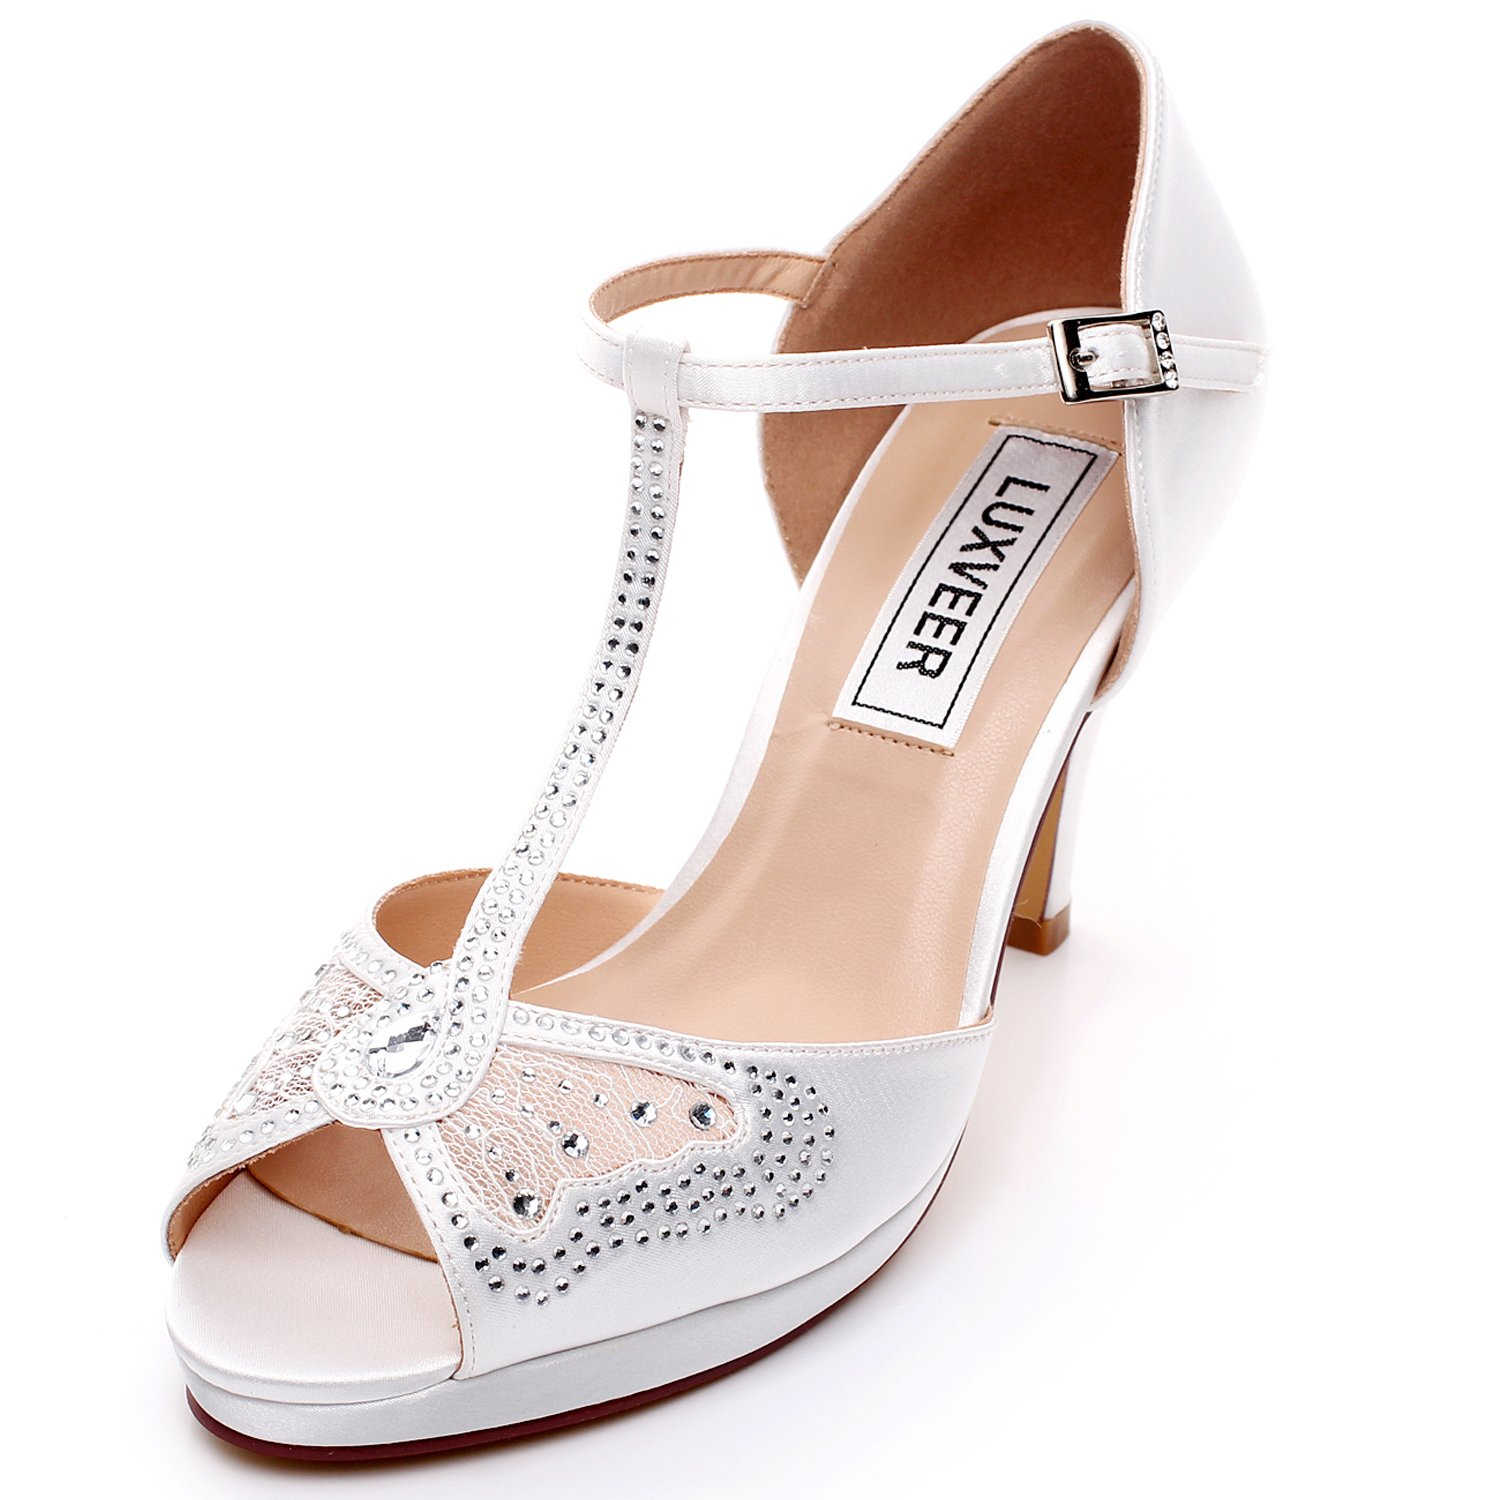 LUXVEER Wedding Sandals Heels for Women ,Silver Rhinestone and Lace Butterfly - Heels 3.5 inch-HK-0192C-Ivory-EU40 Wedding Shoes